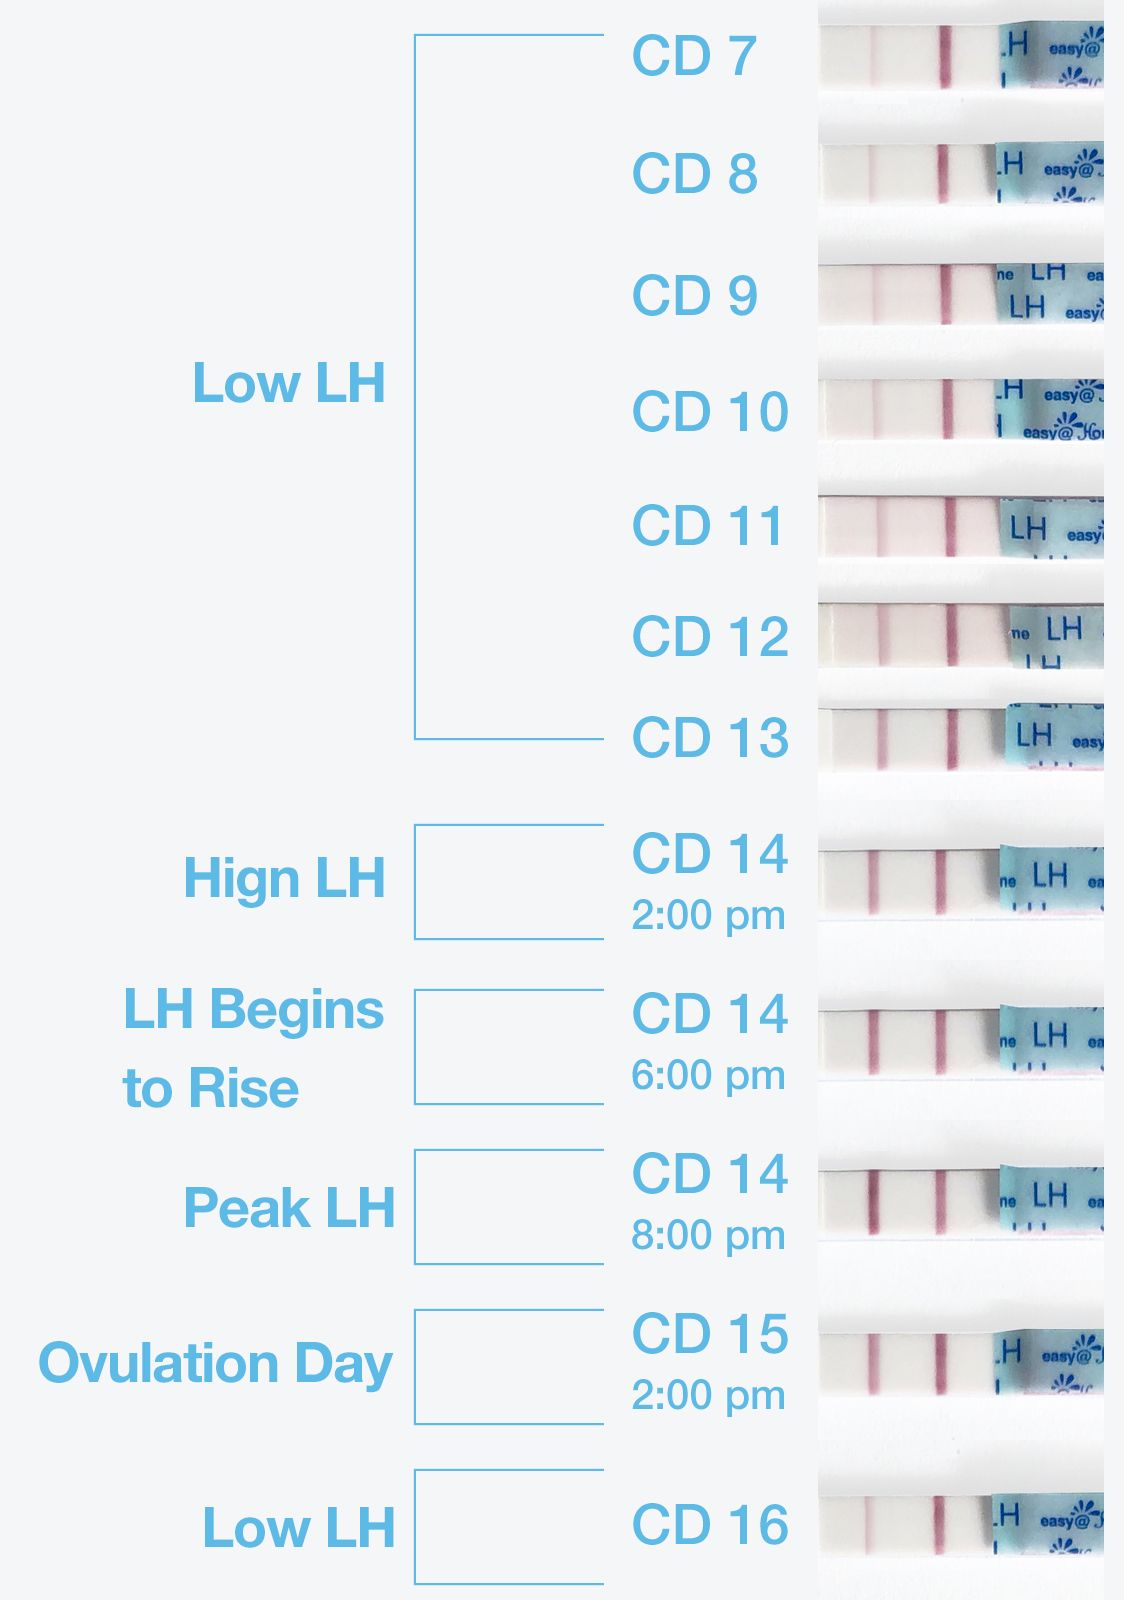 Premom ovulation calculator helps you track ovulation progression